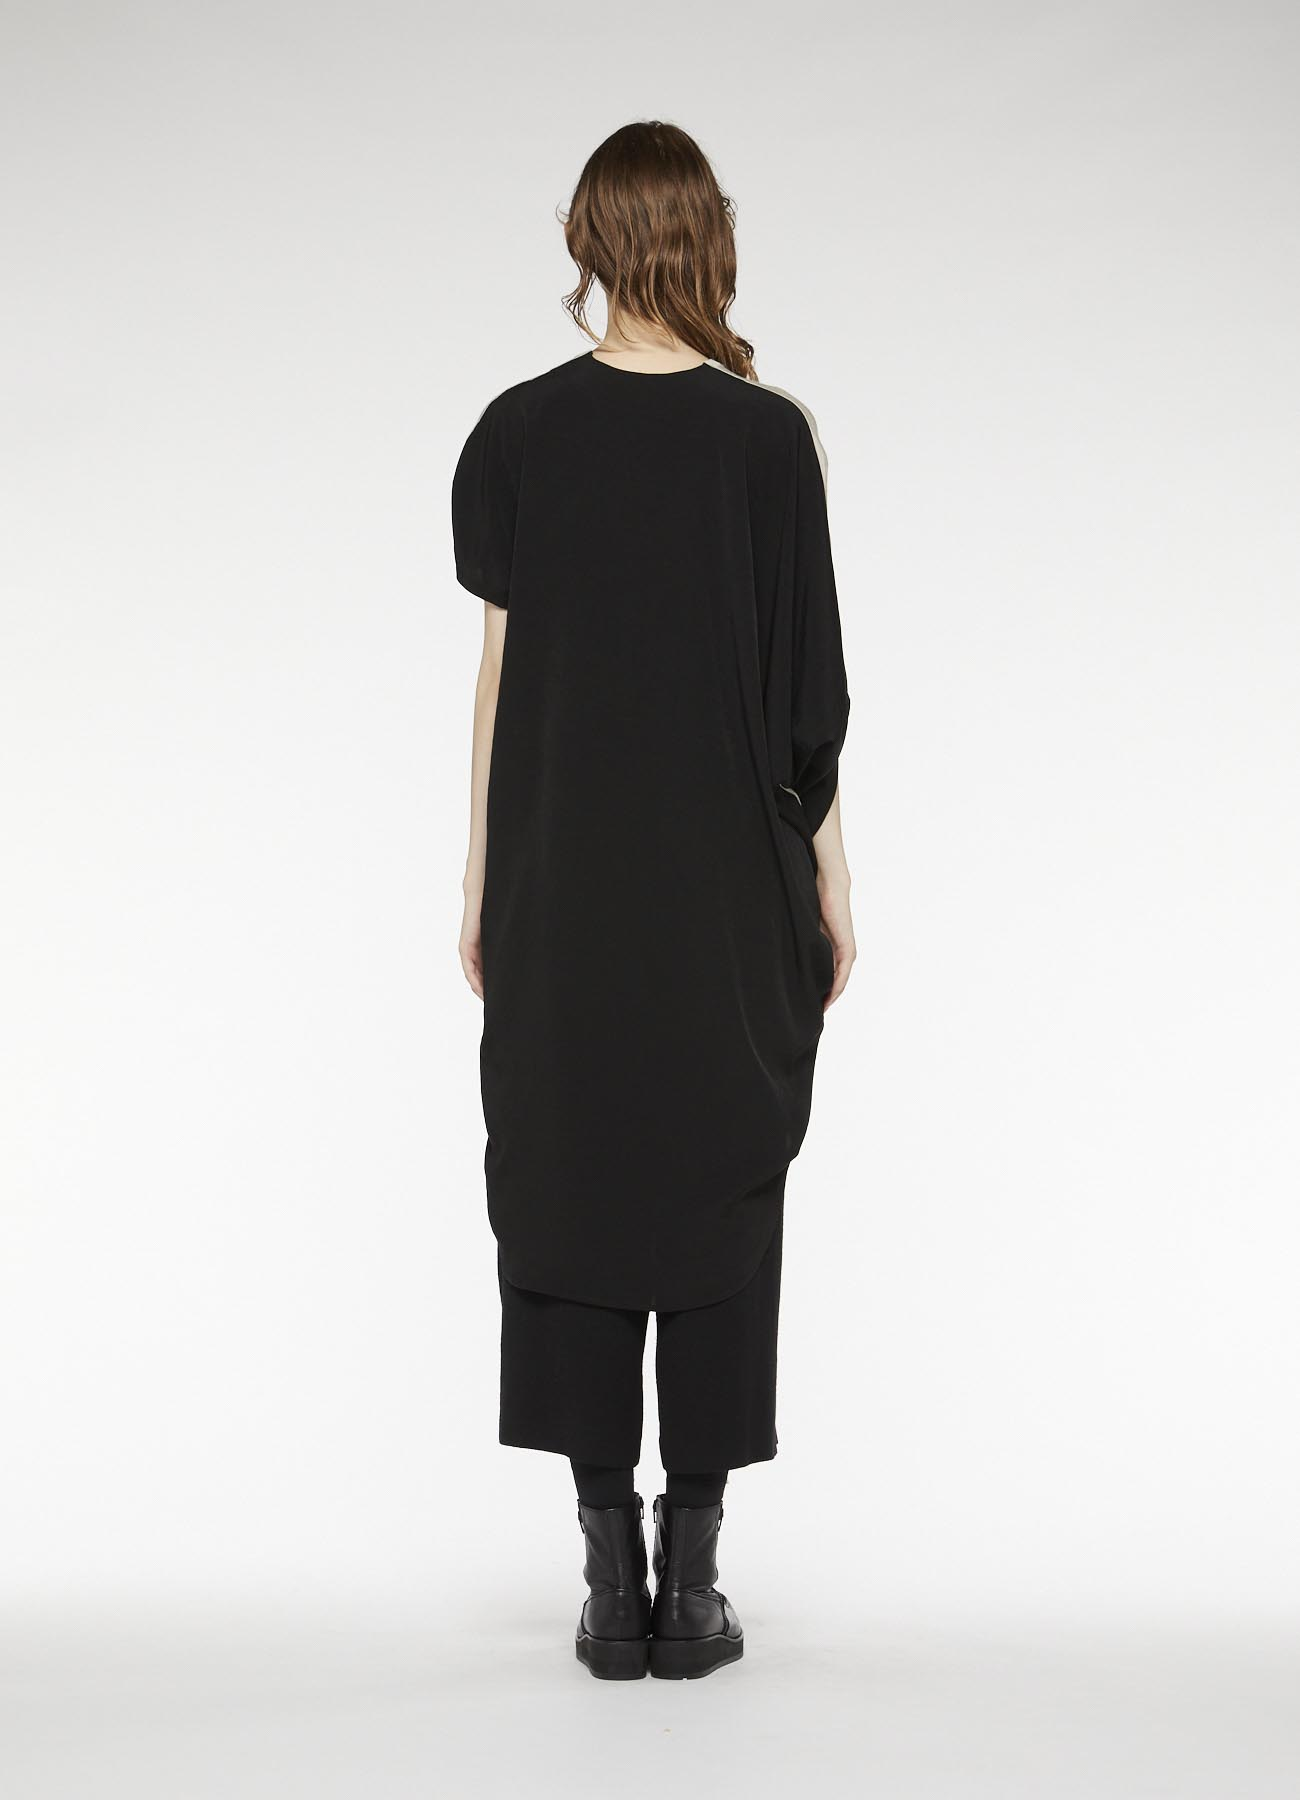 RISMATbyY's DESIGNED SLEEVE ASYMMETRICAL DRESS